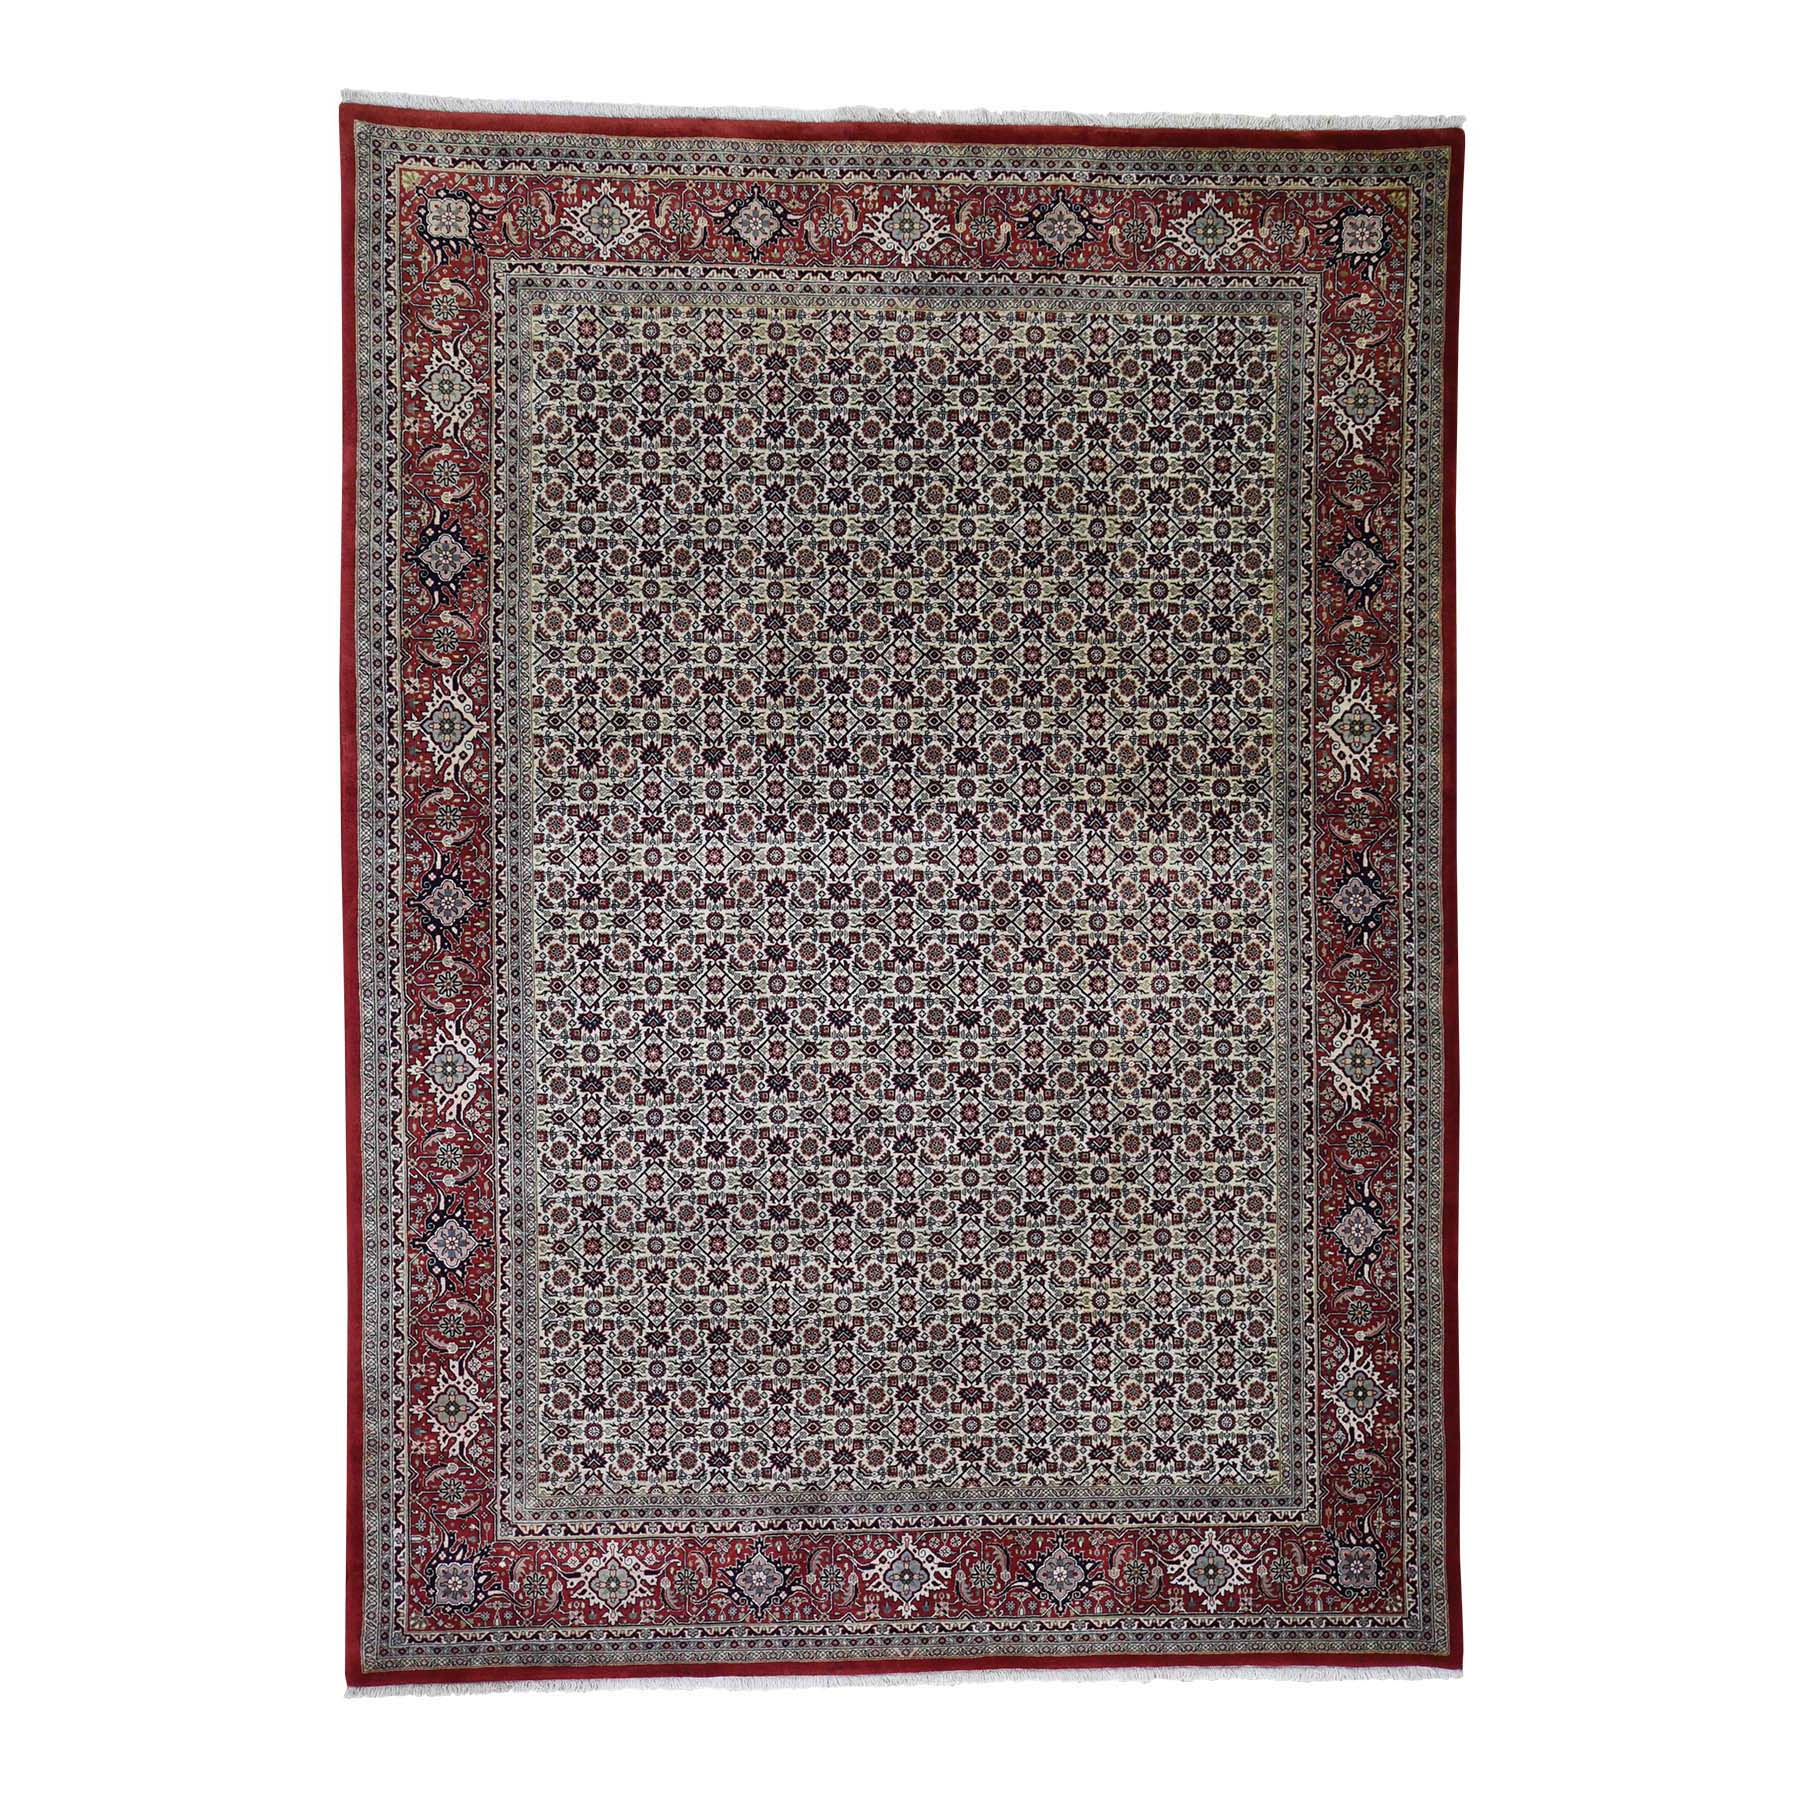 "6'10""x9'5"" Bijar Mahi 300 KPSI Wool and Silk Hand Knotted Oriental Rug"